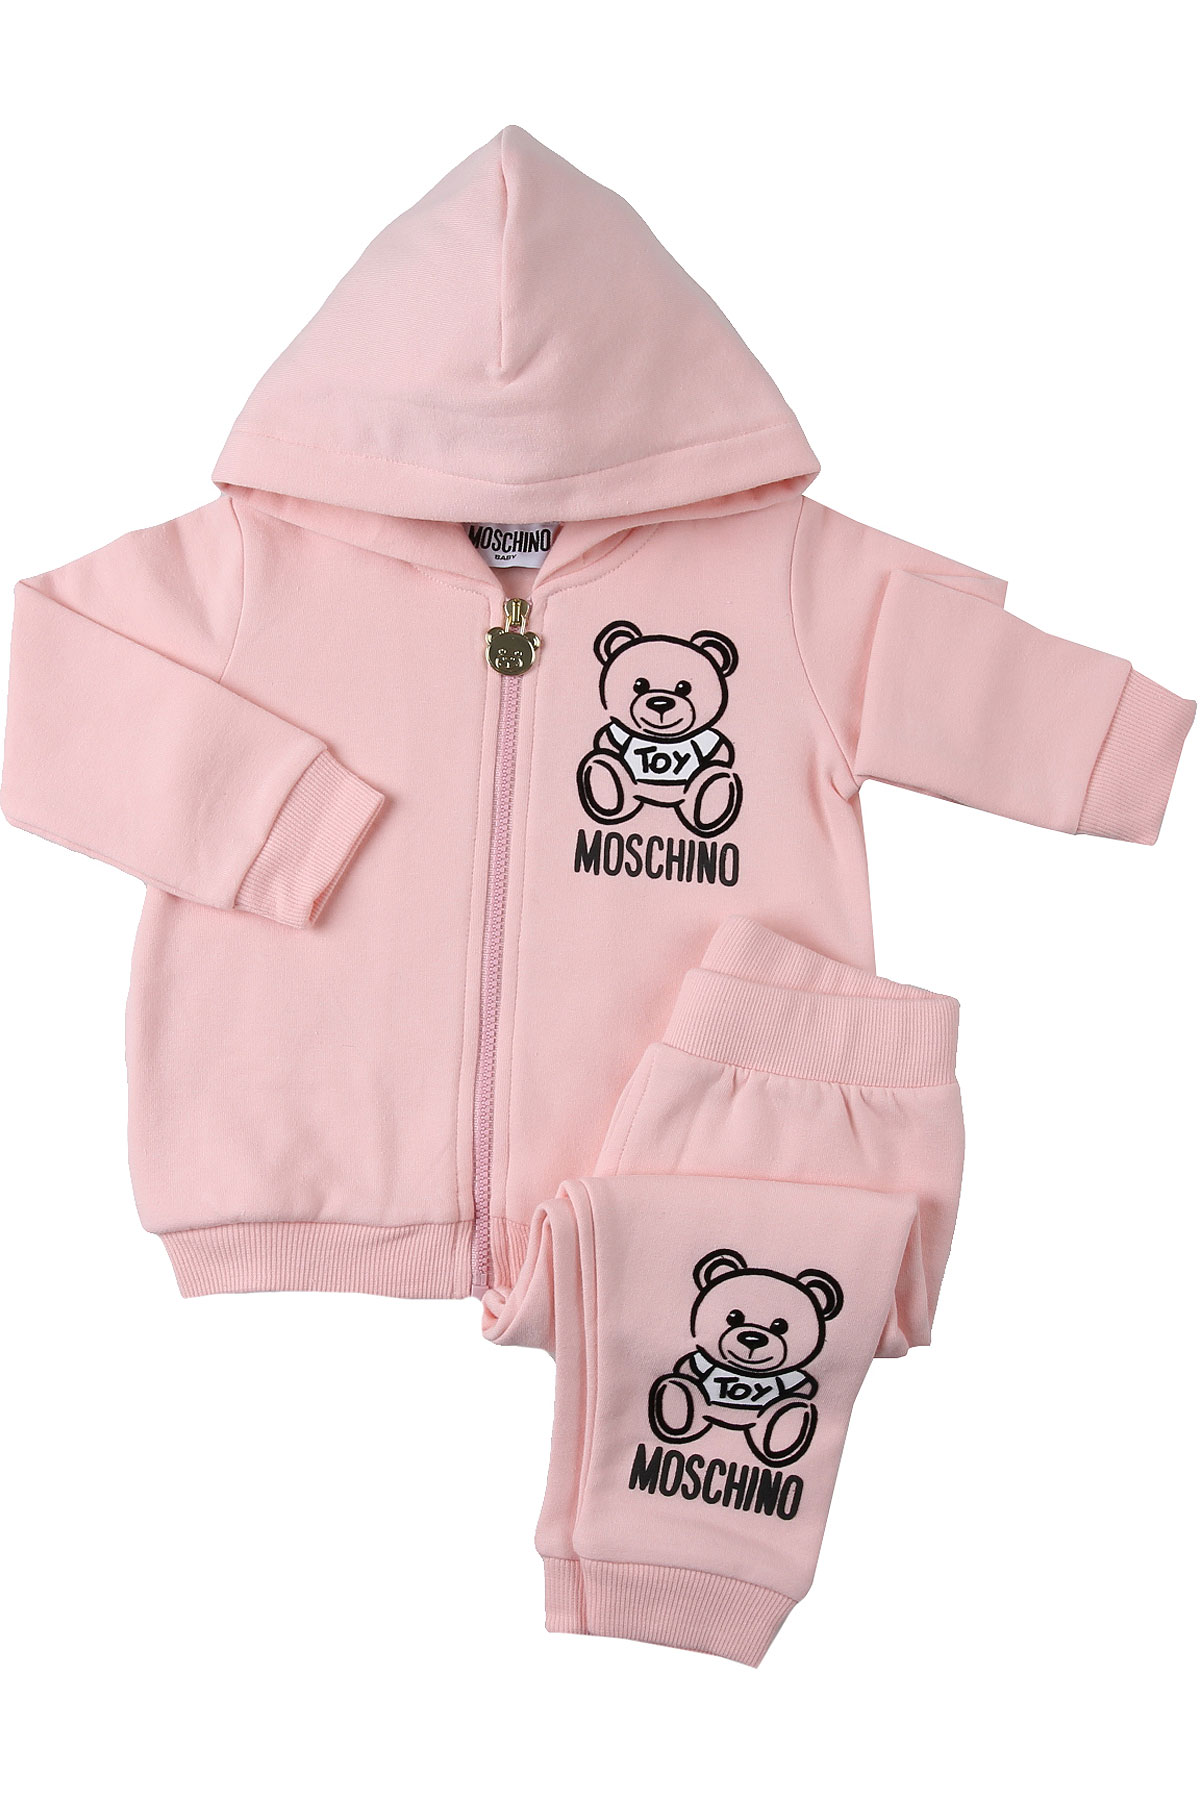 Moschino Baby Girl Clothing On Sale, Light Pink, Cotton, 2019, 12M 18M 24M 2Y 3Y 9M